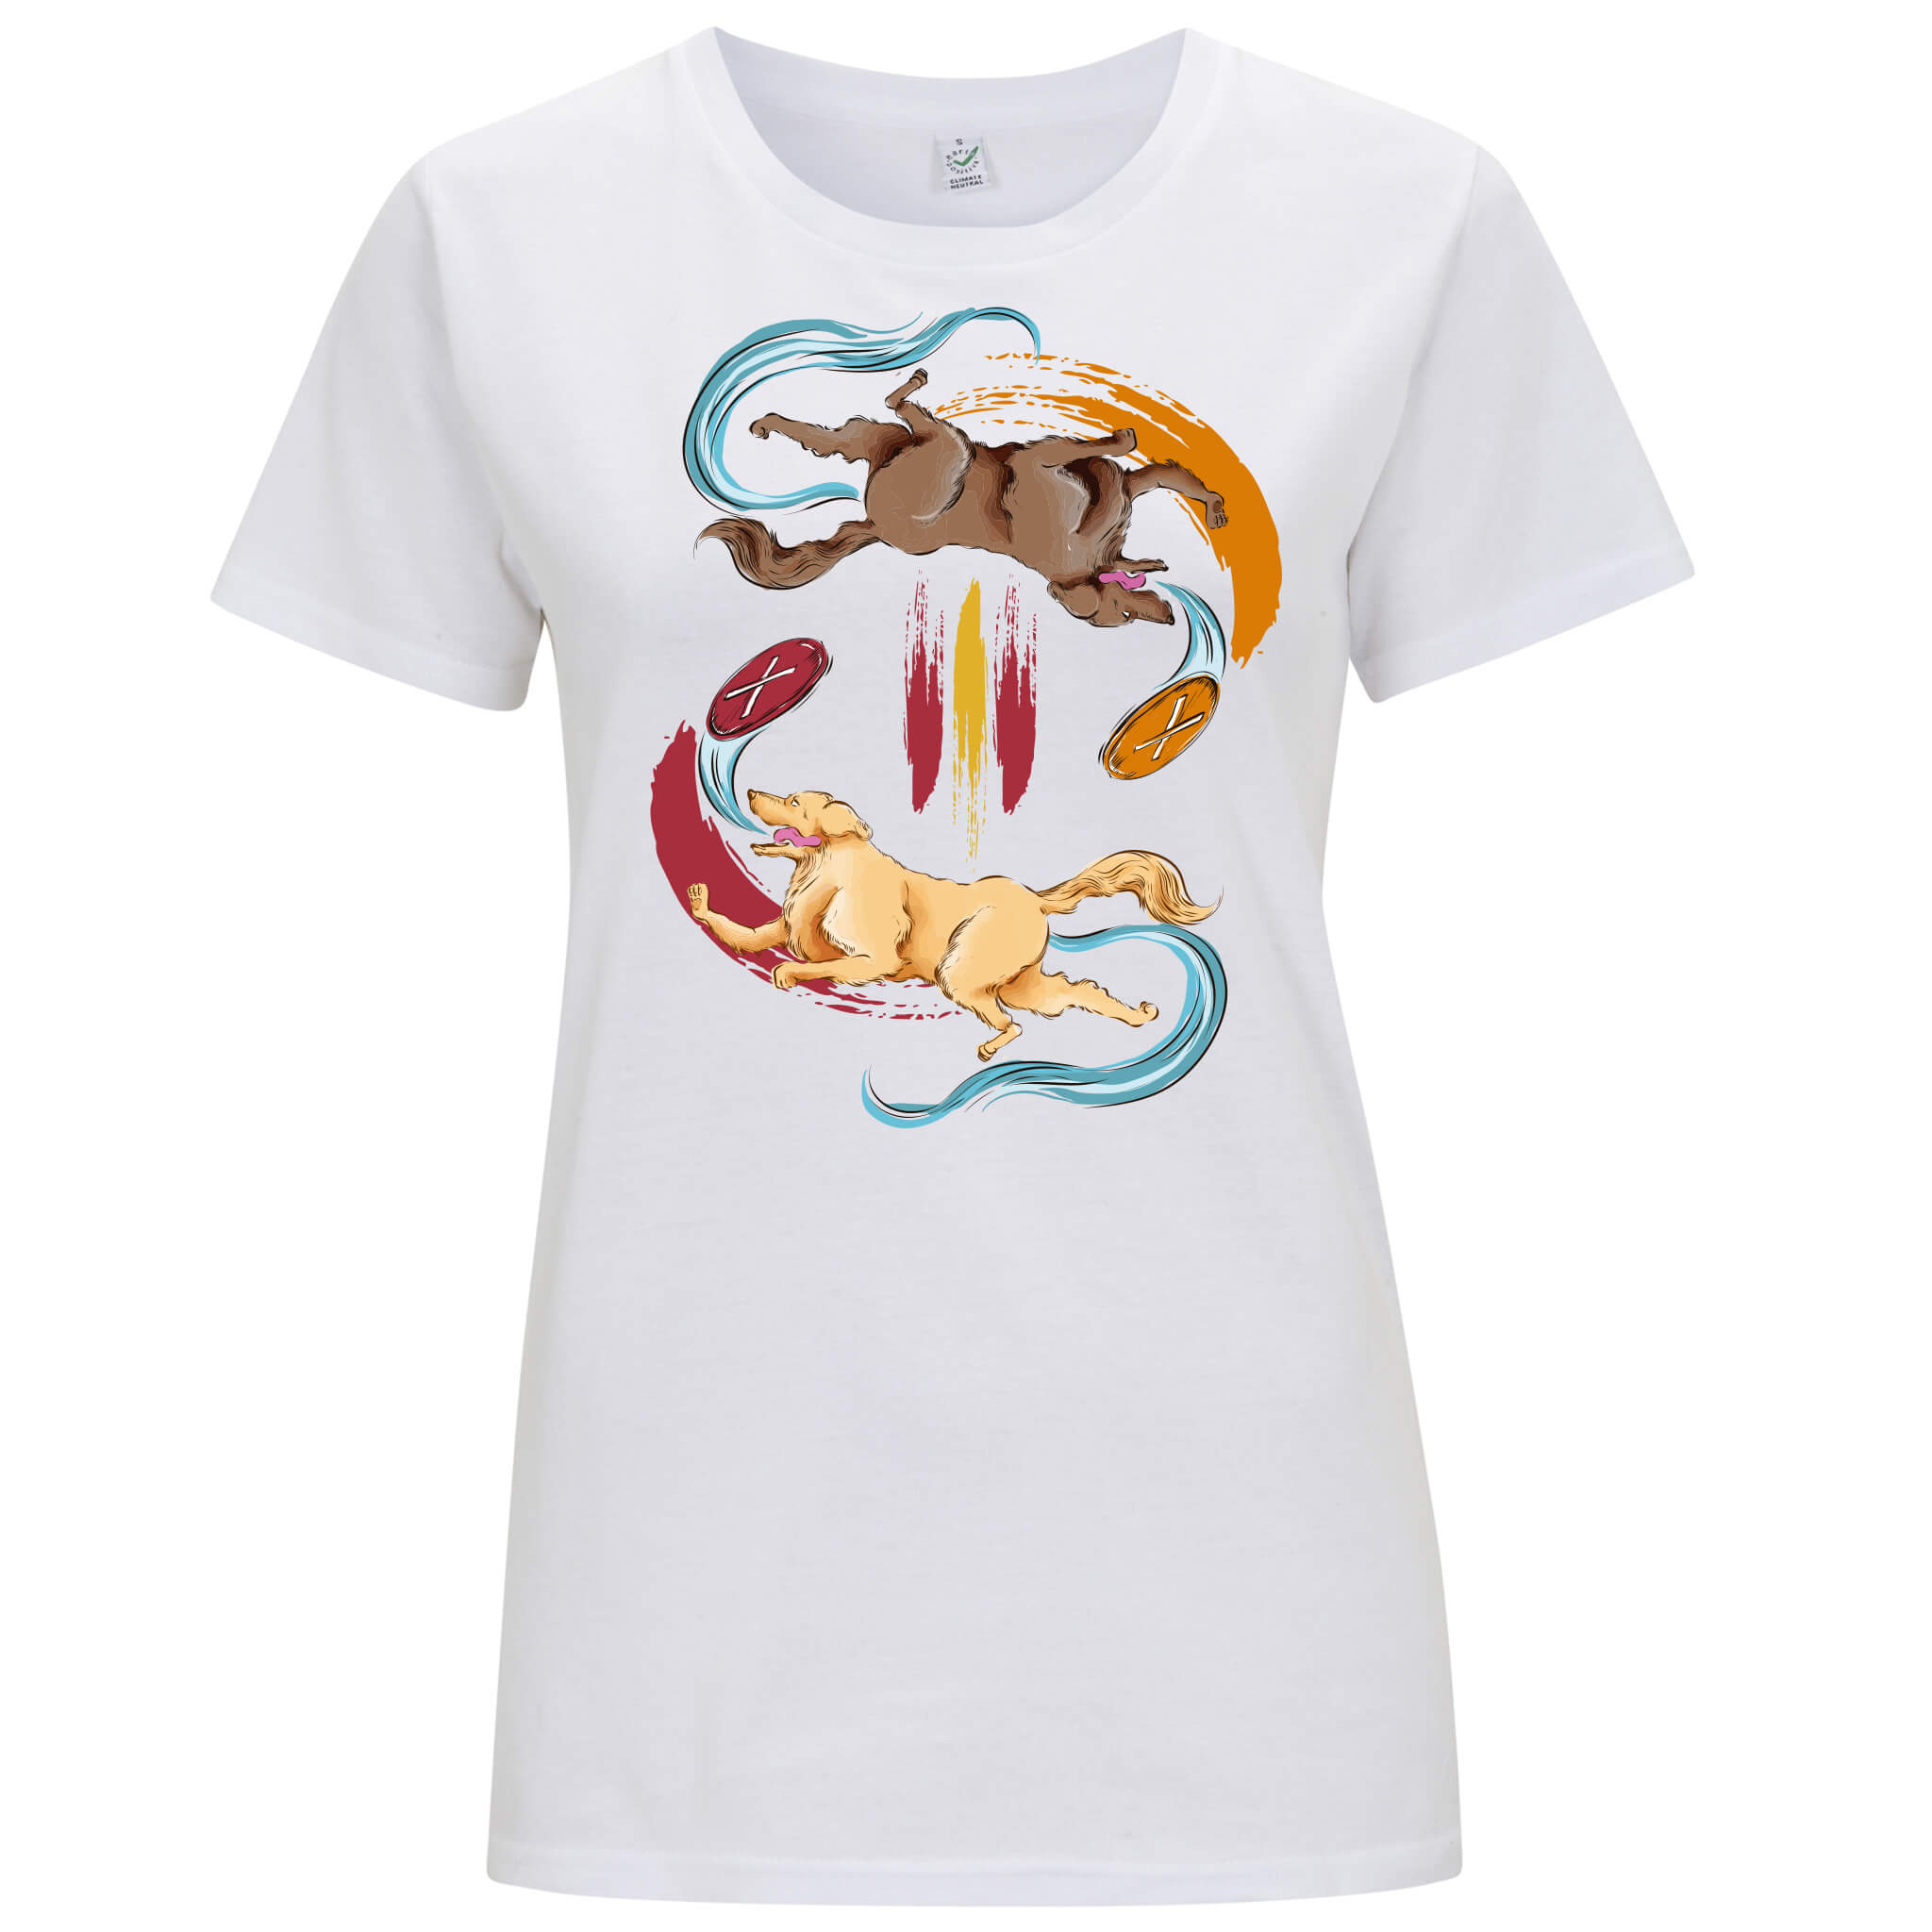 Golden Retriever - T-shirt Donna - T-Shirt by Fol The Brand